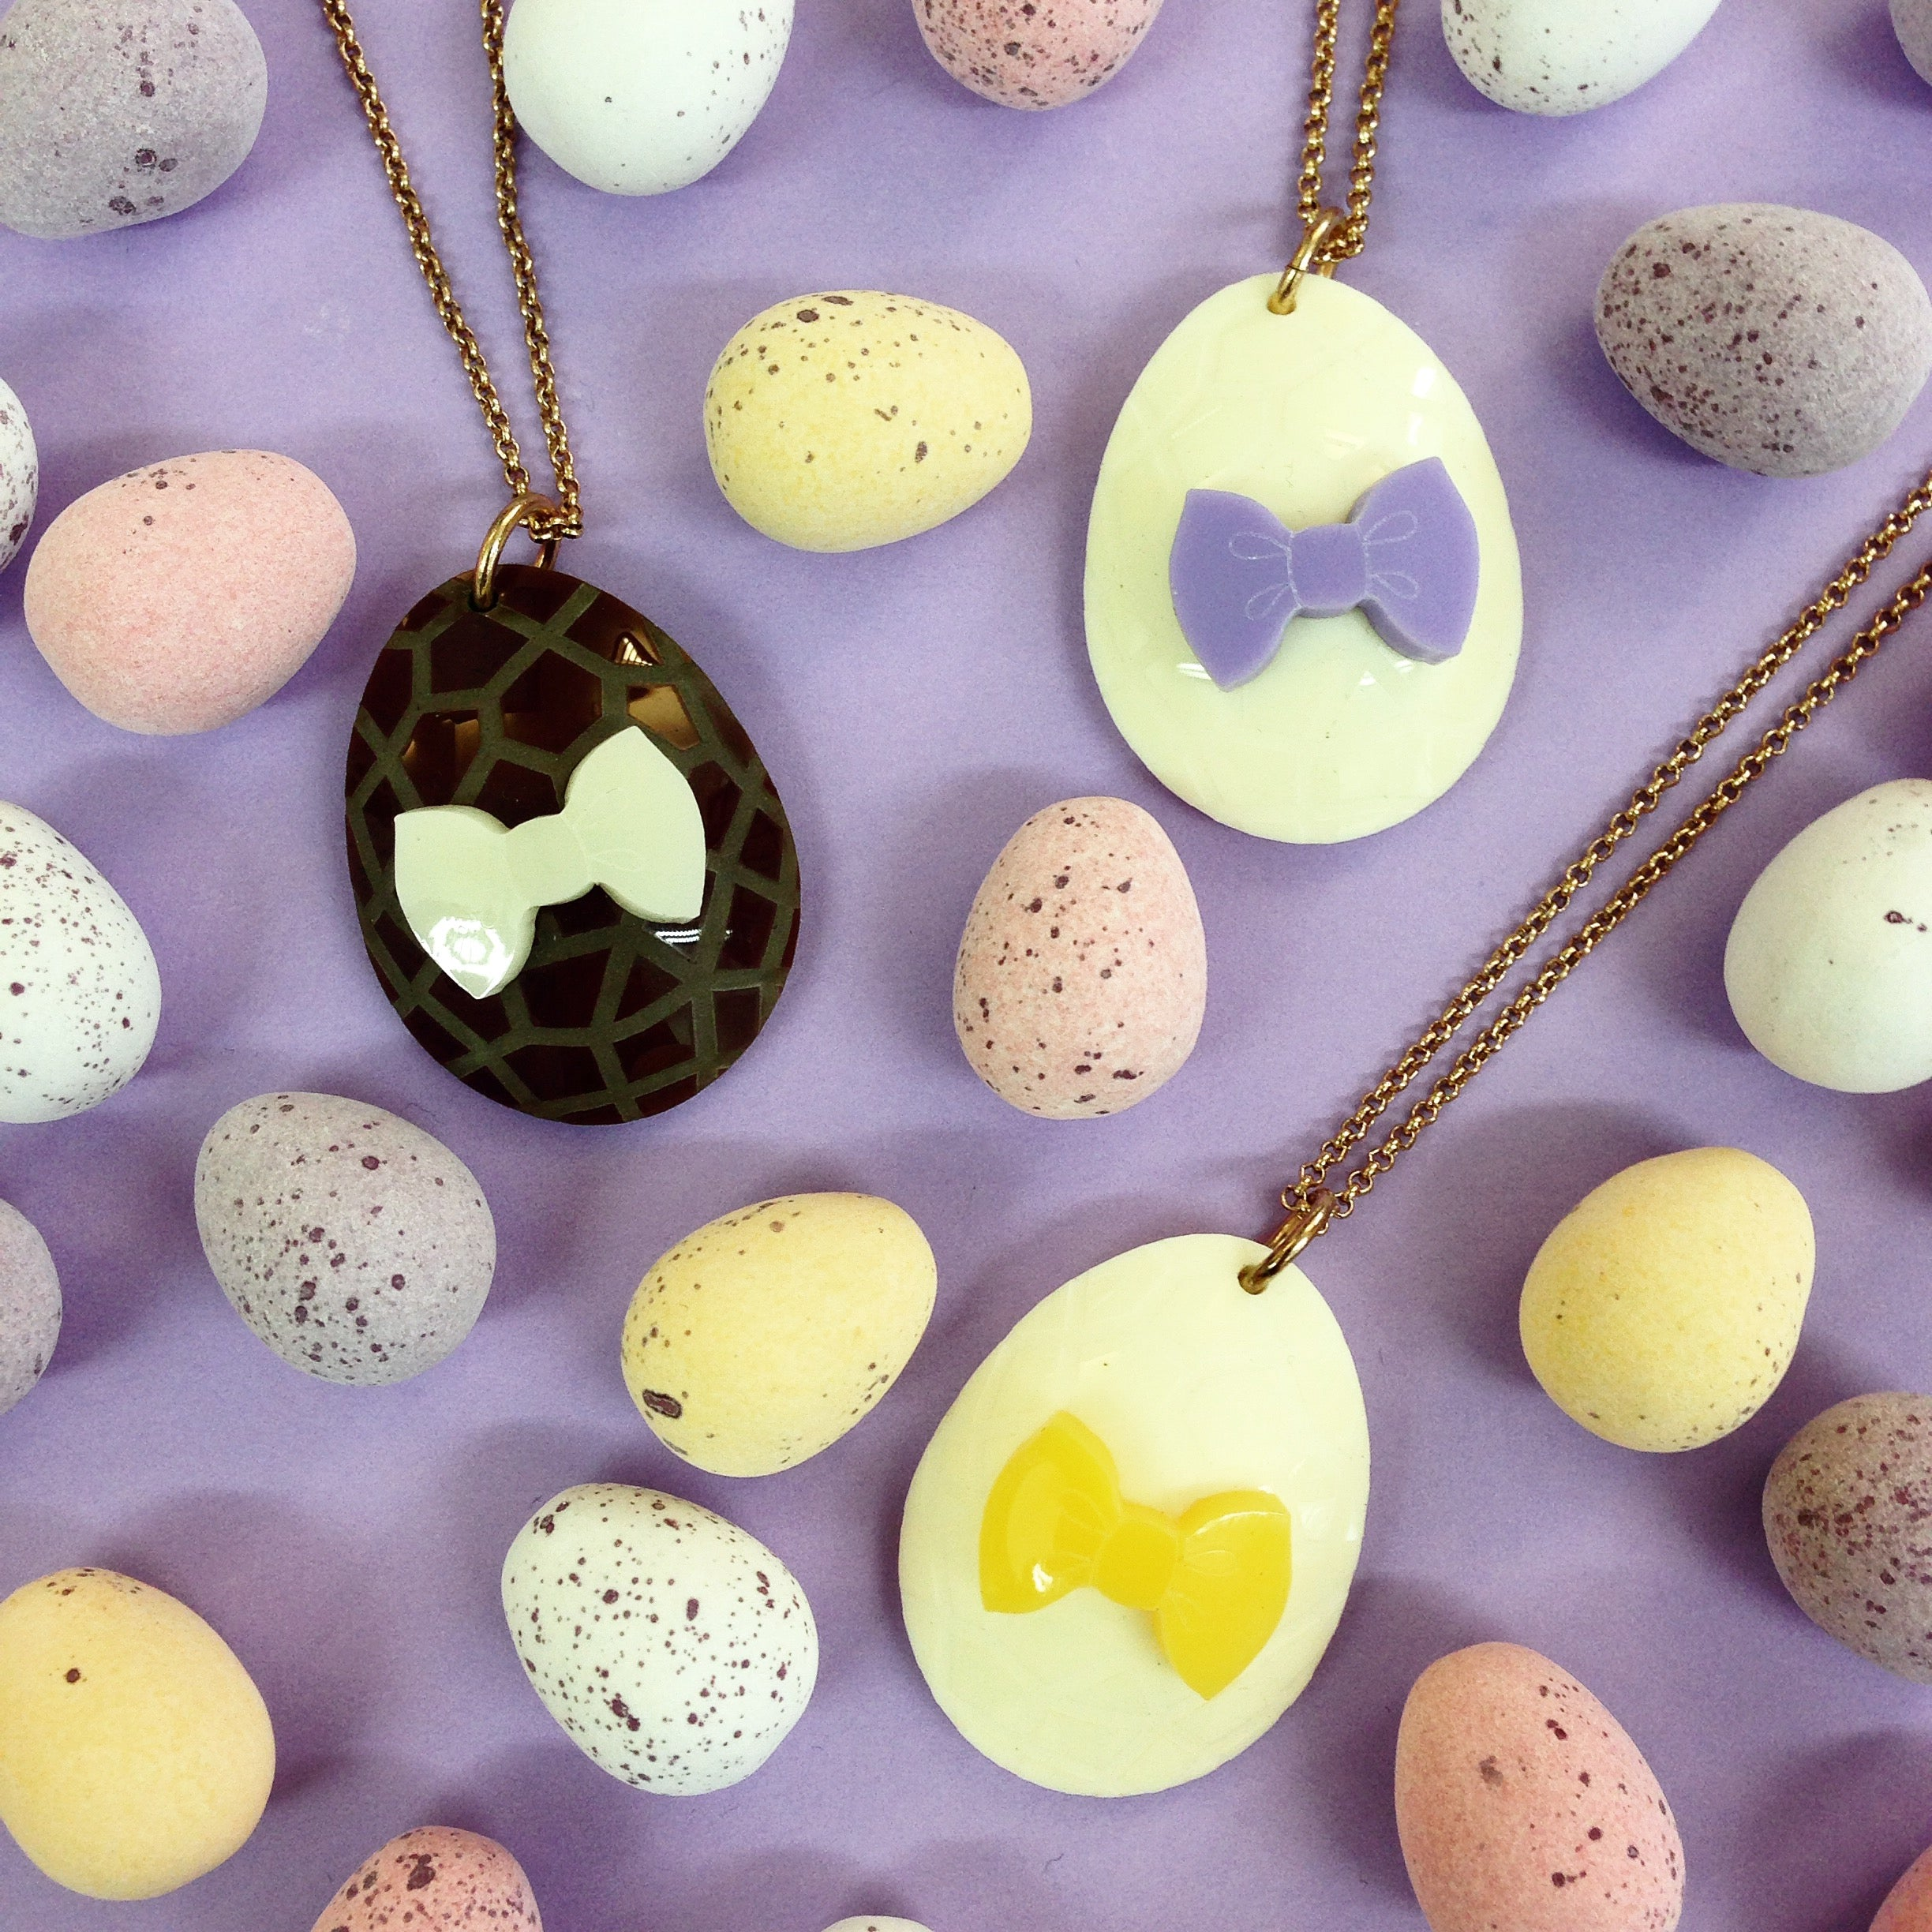 5 WAYS TO WIN AN EASTER EGG NECKLACE